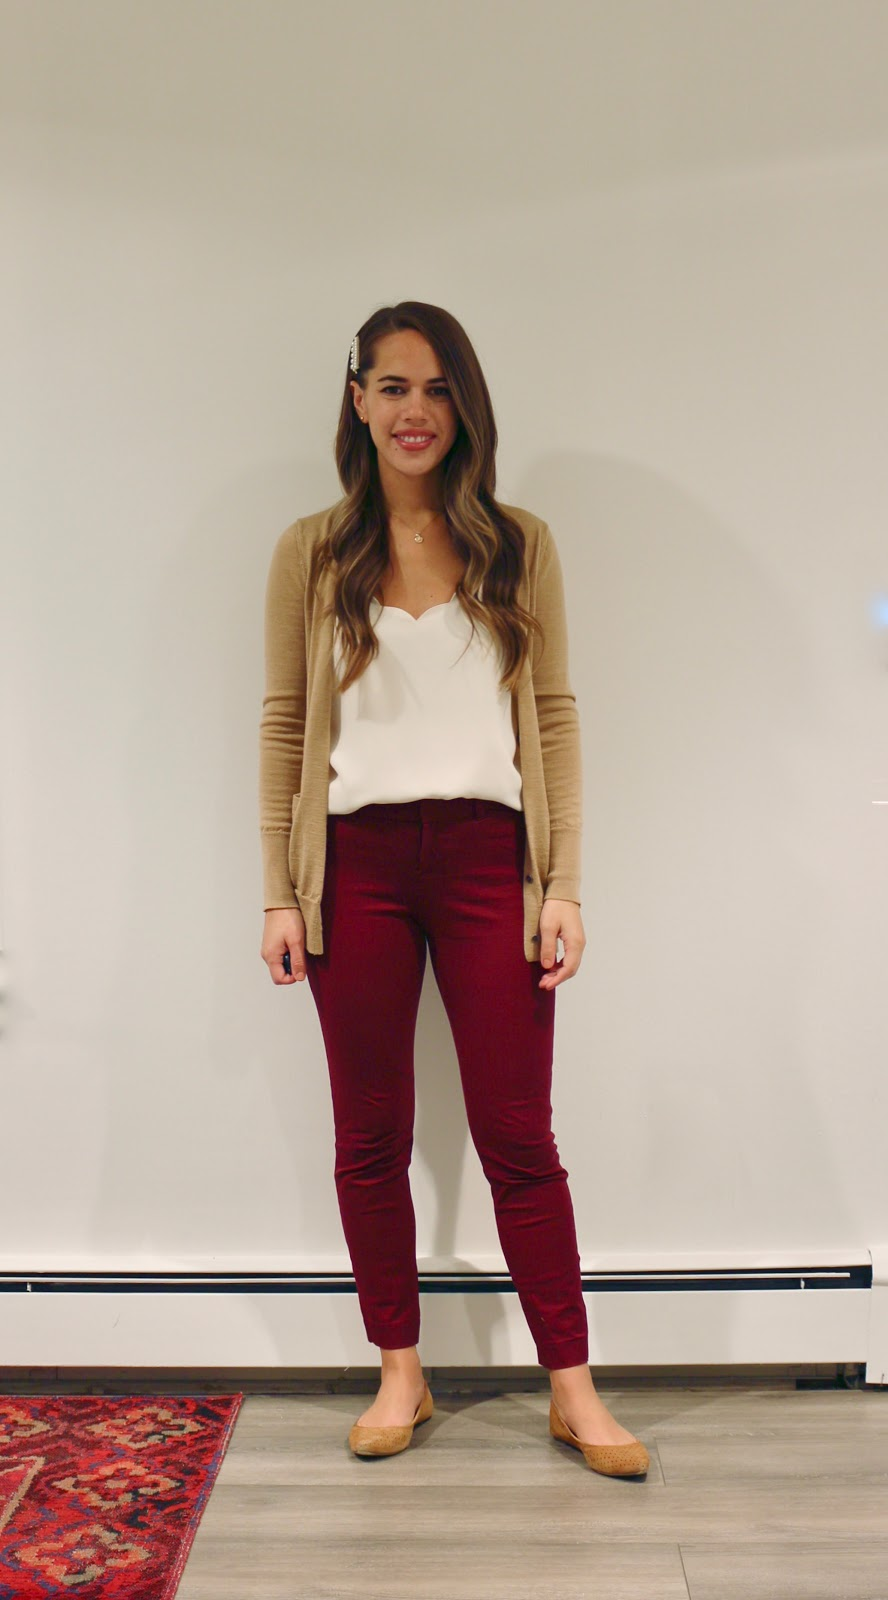 Jules in Flats - Scalloped Cami + Burgundy Ankle Pants (Business Casual Workwear on a Budget)